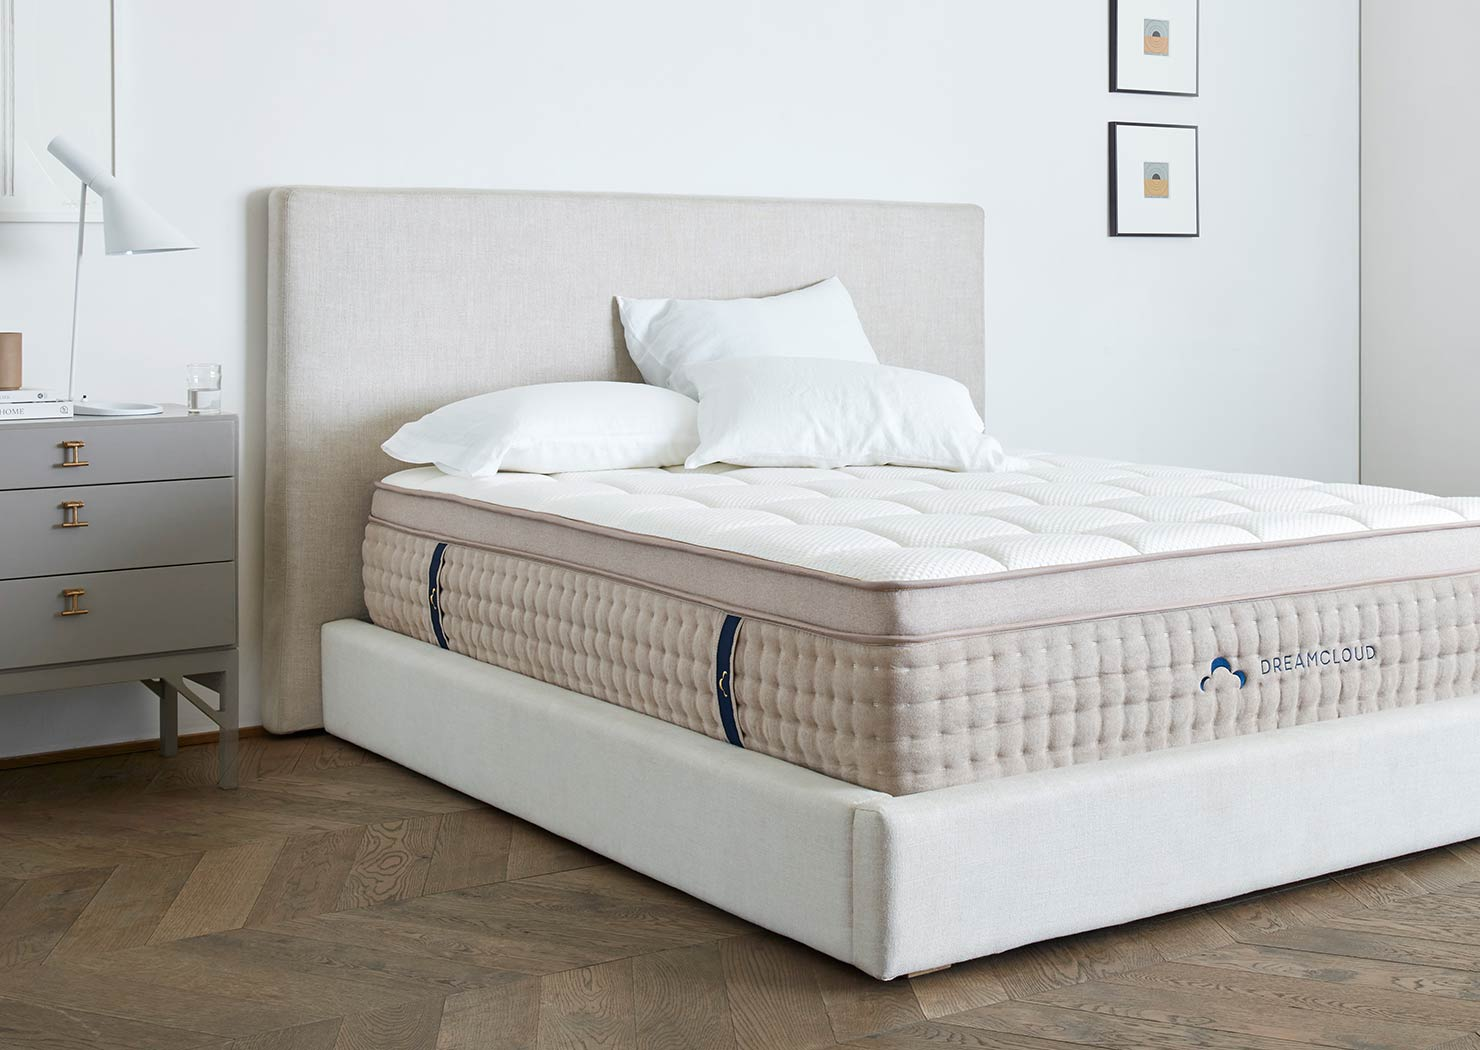 Dreamcloud Luxury Hybrid King Mattress Deals Coupons